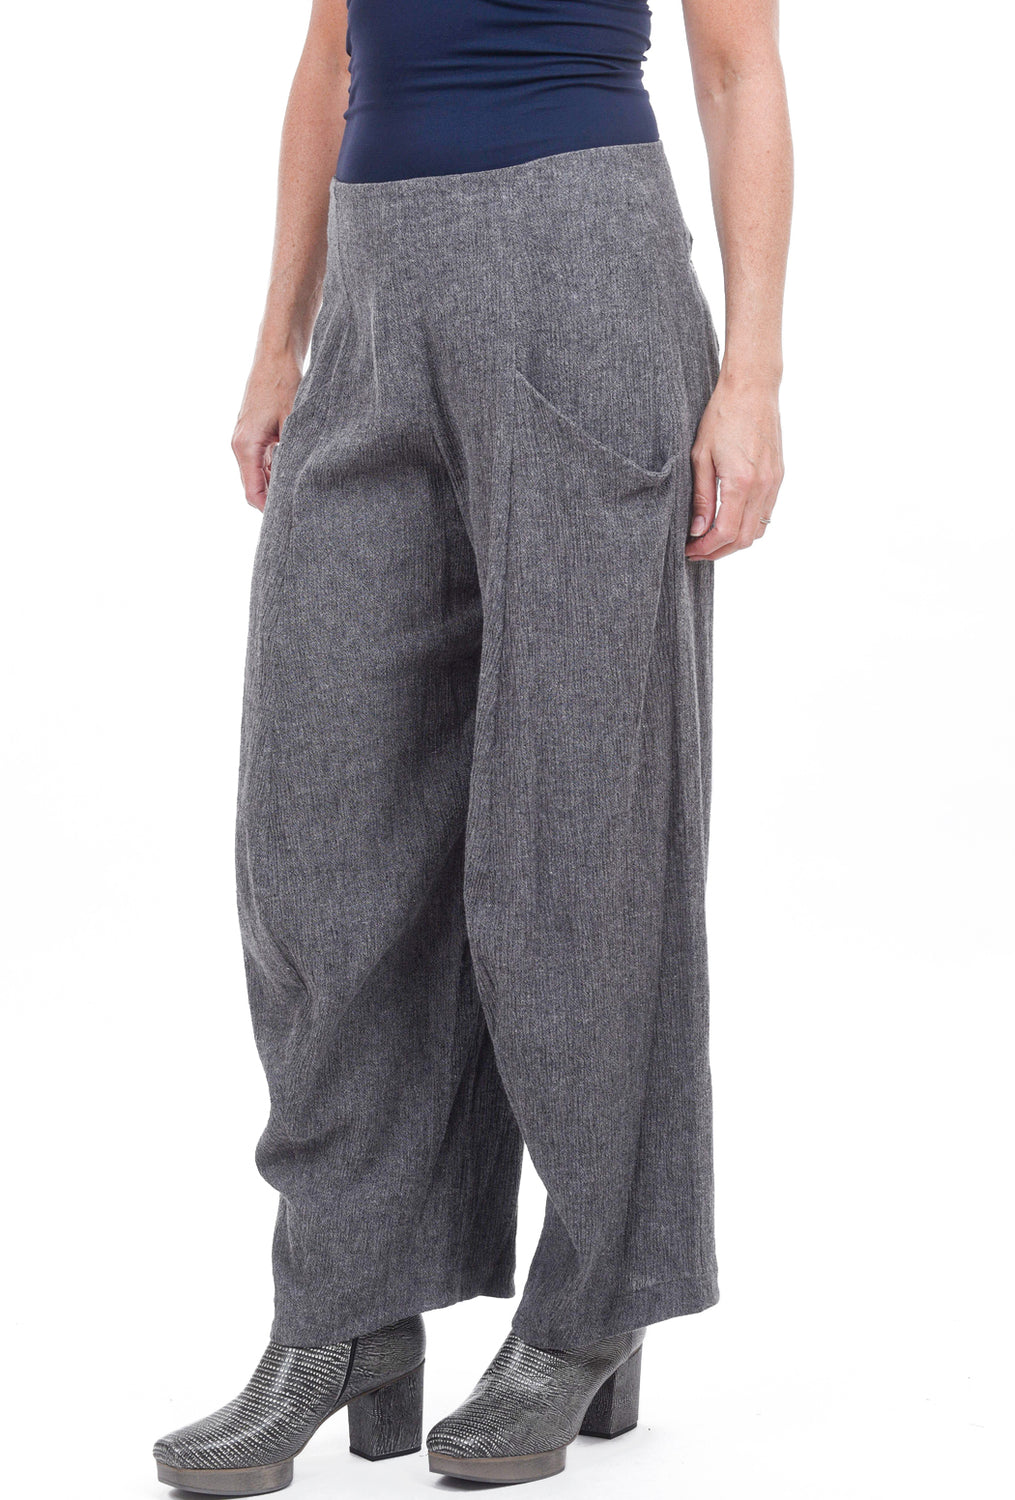 Matthildur Linen-Cotton Lantern Pants, Gray Heather